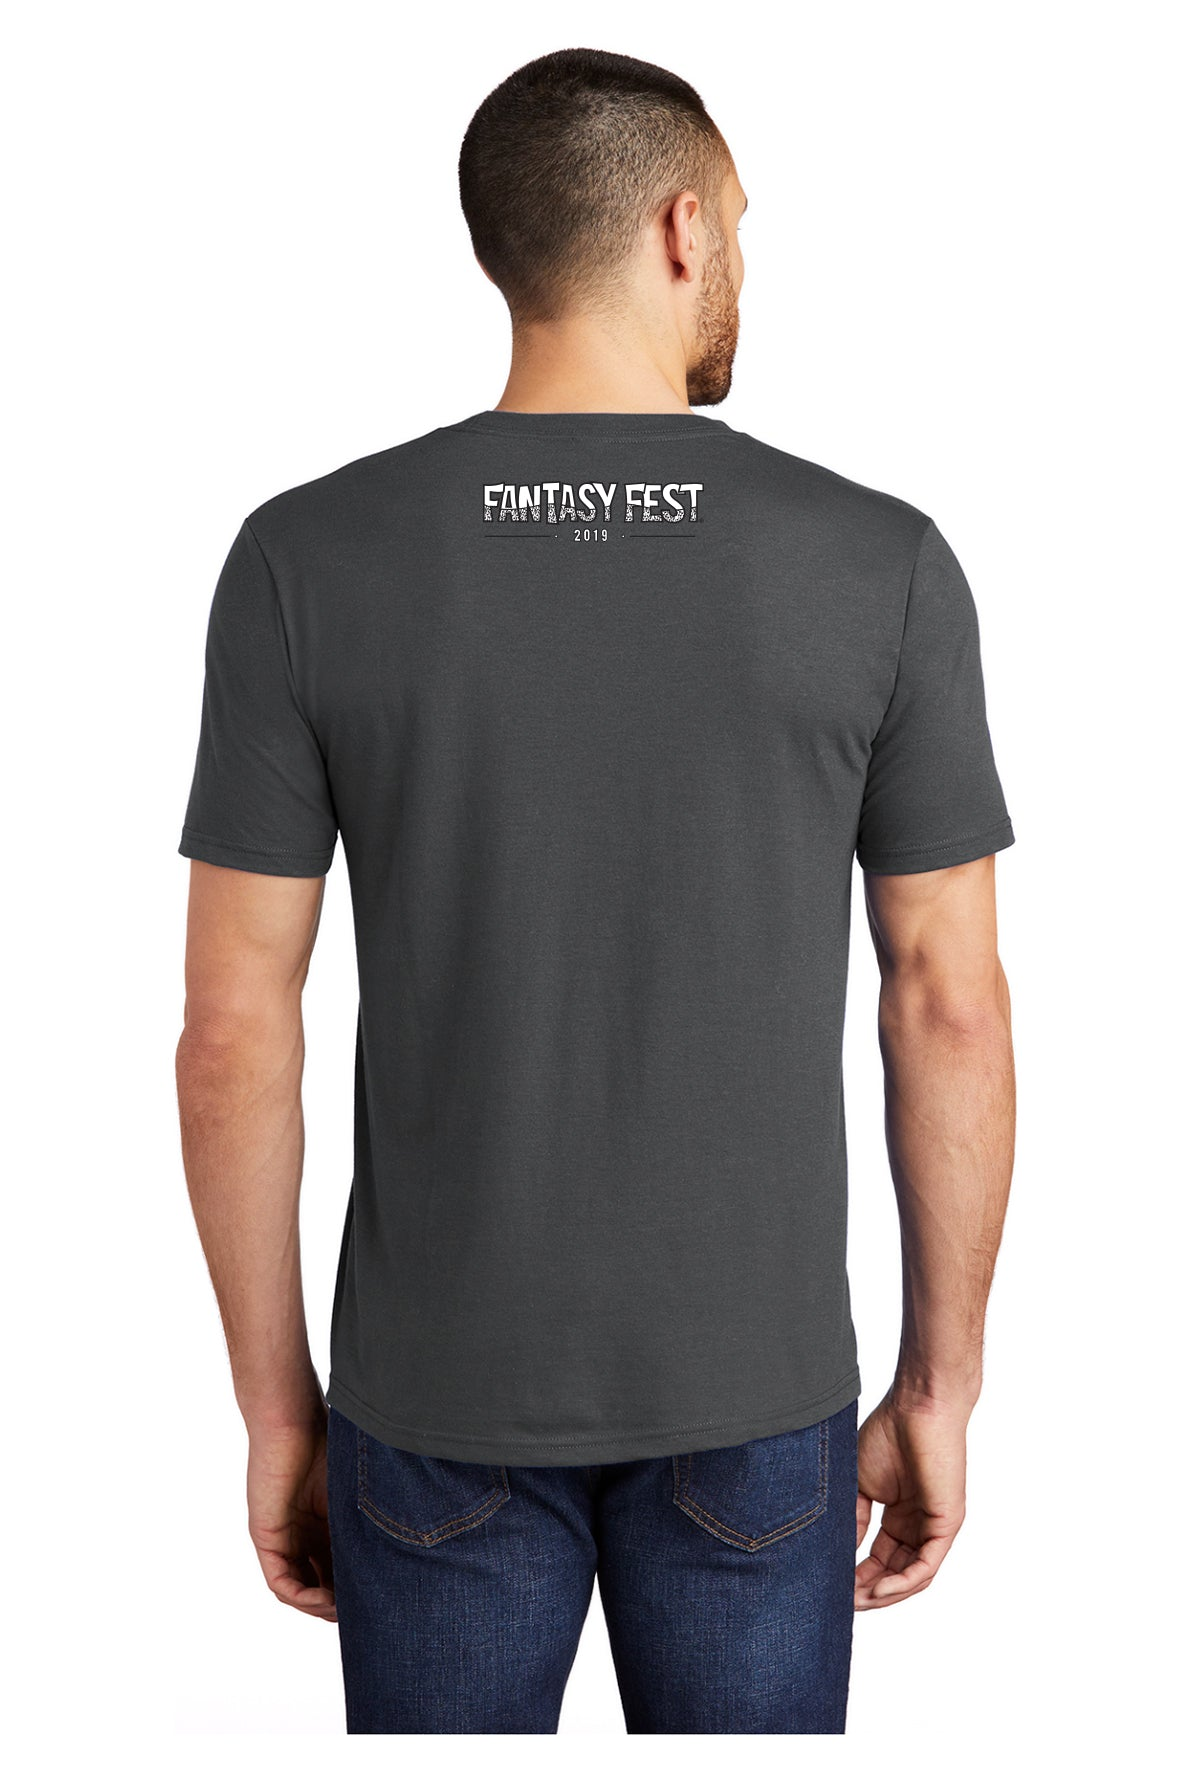 2019 Official Fantasy Fest Rooster Tee - Charcoal